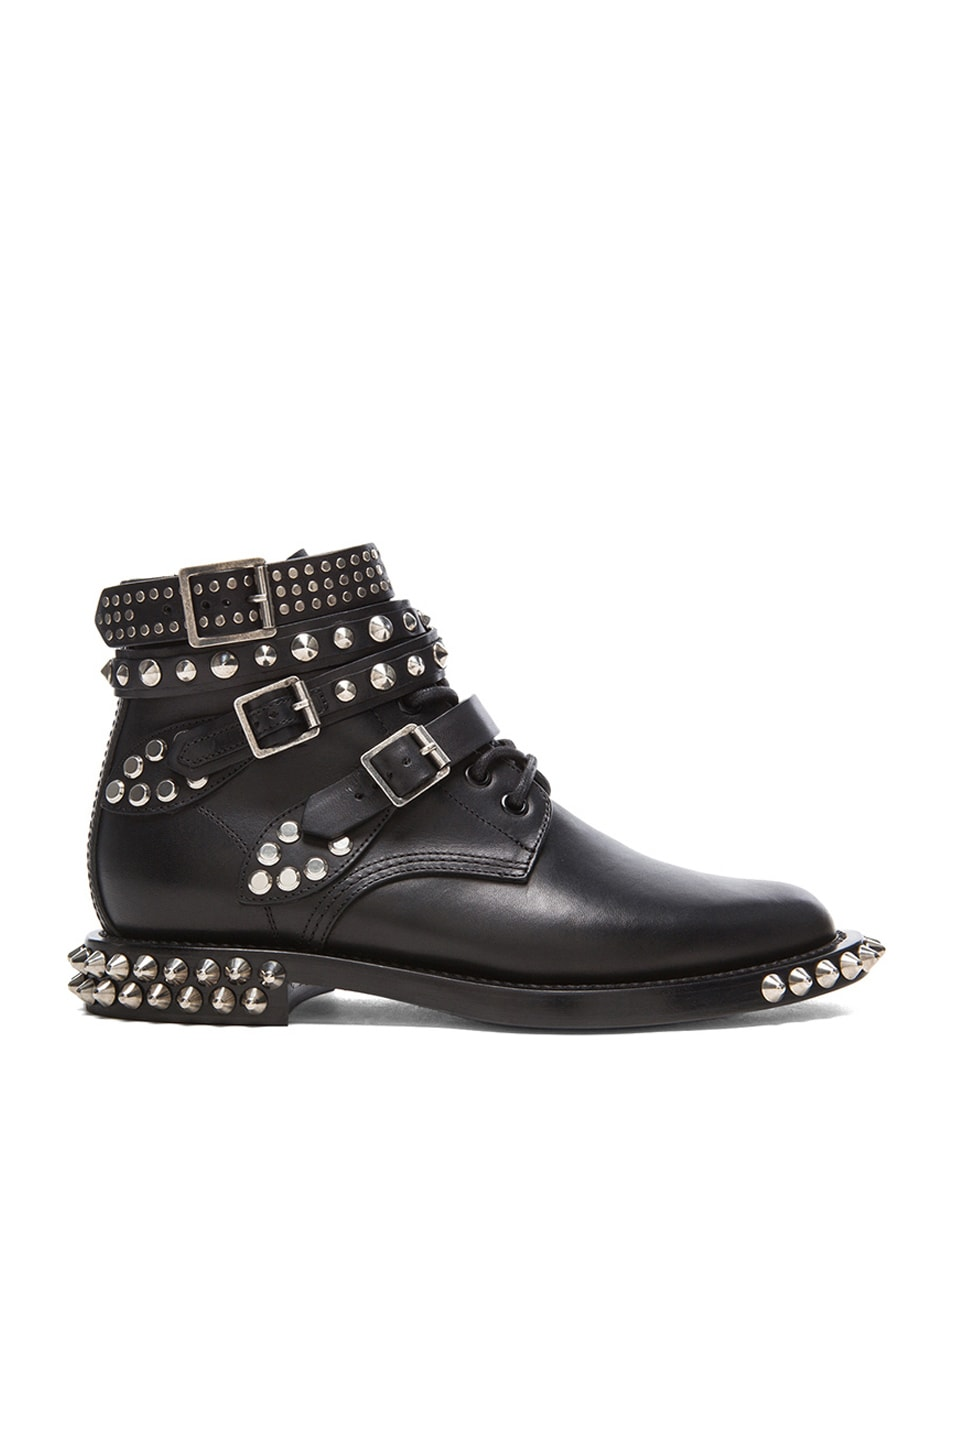 Image 1 of Saint Laurent Rangers Double Studded Leather Low Combat Boots in Black